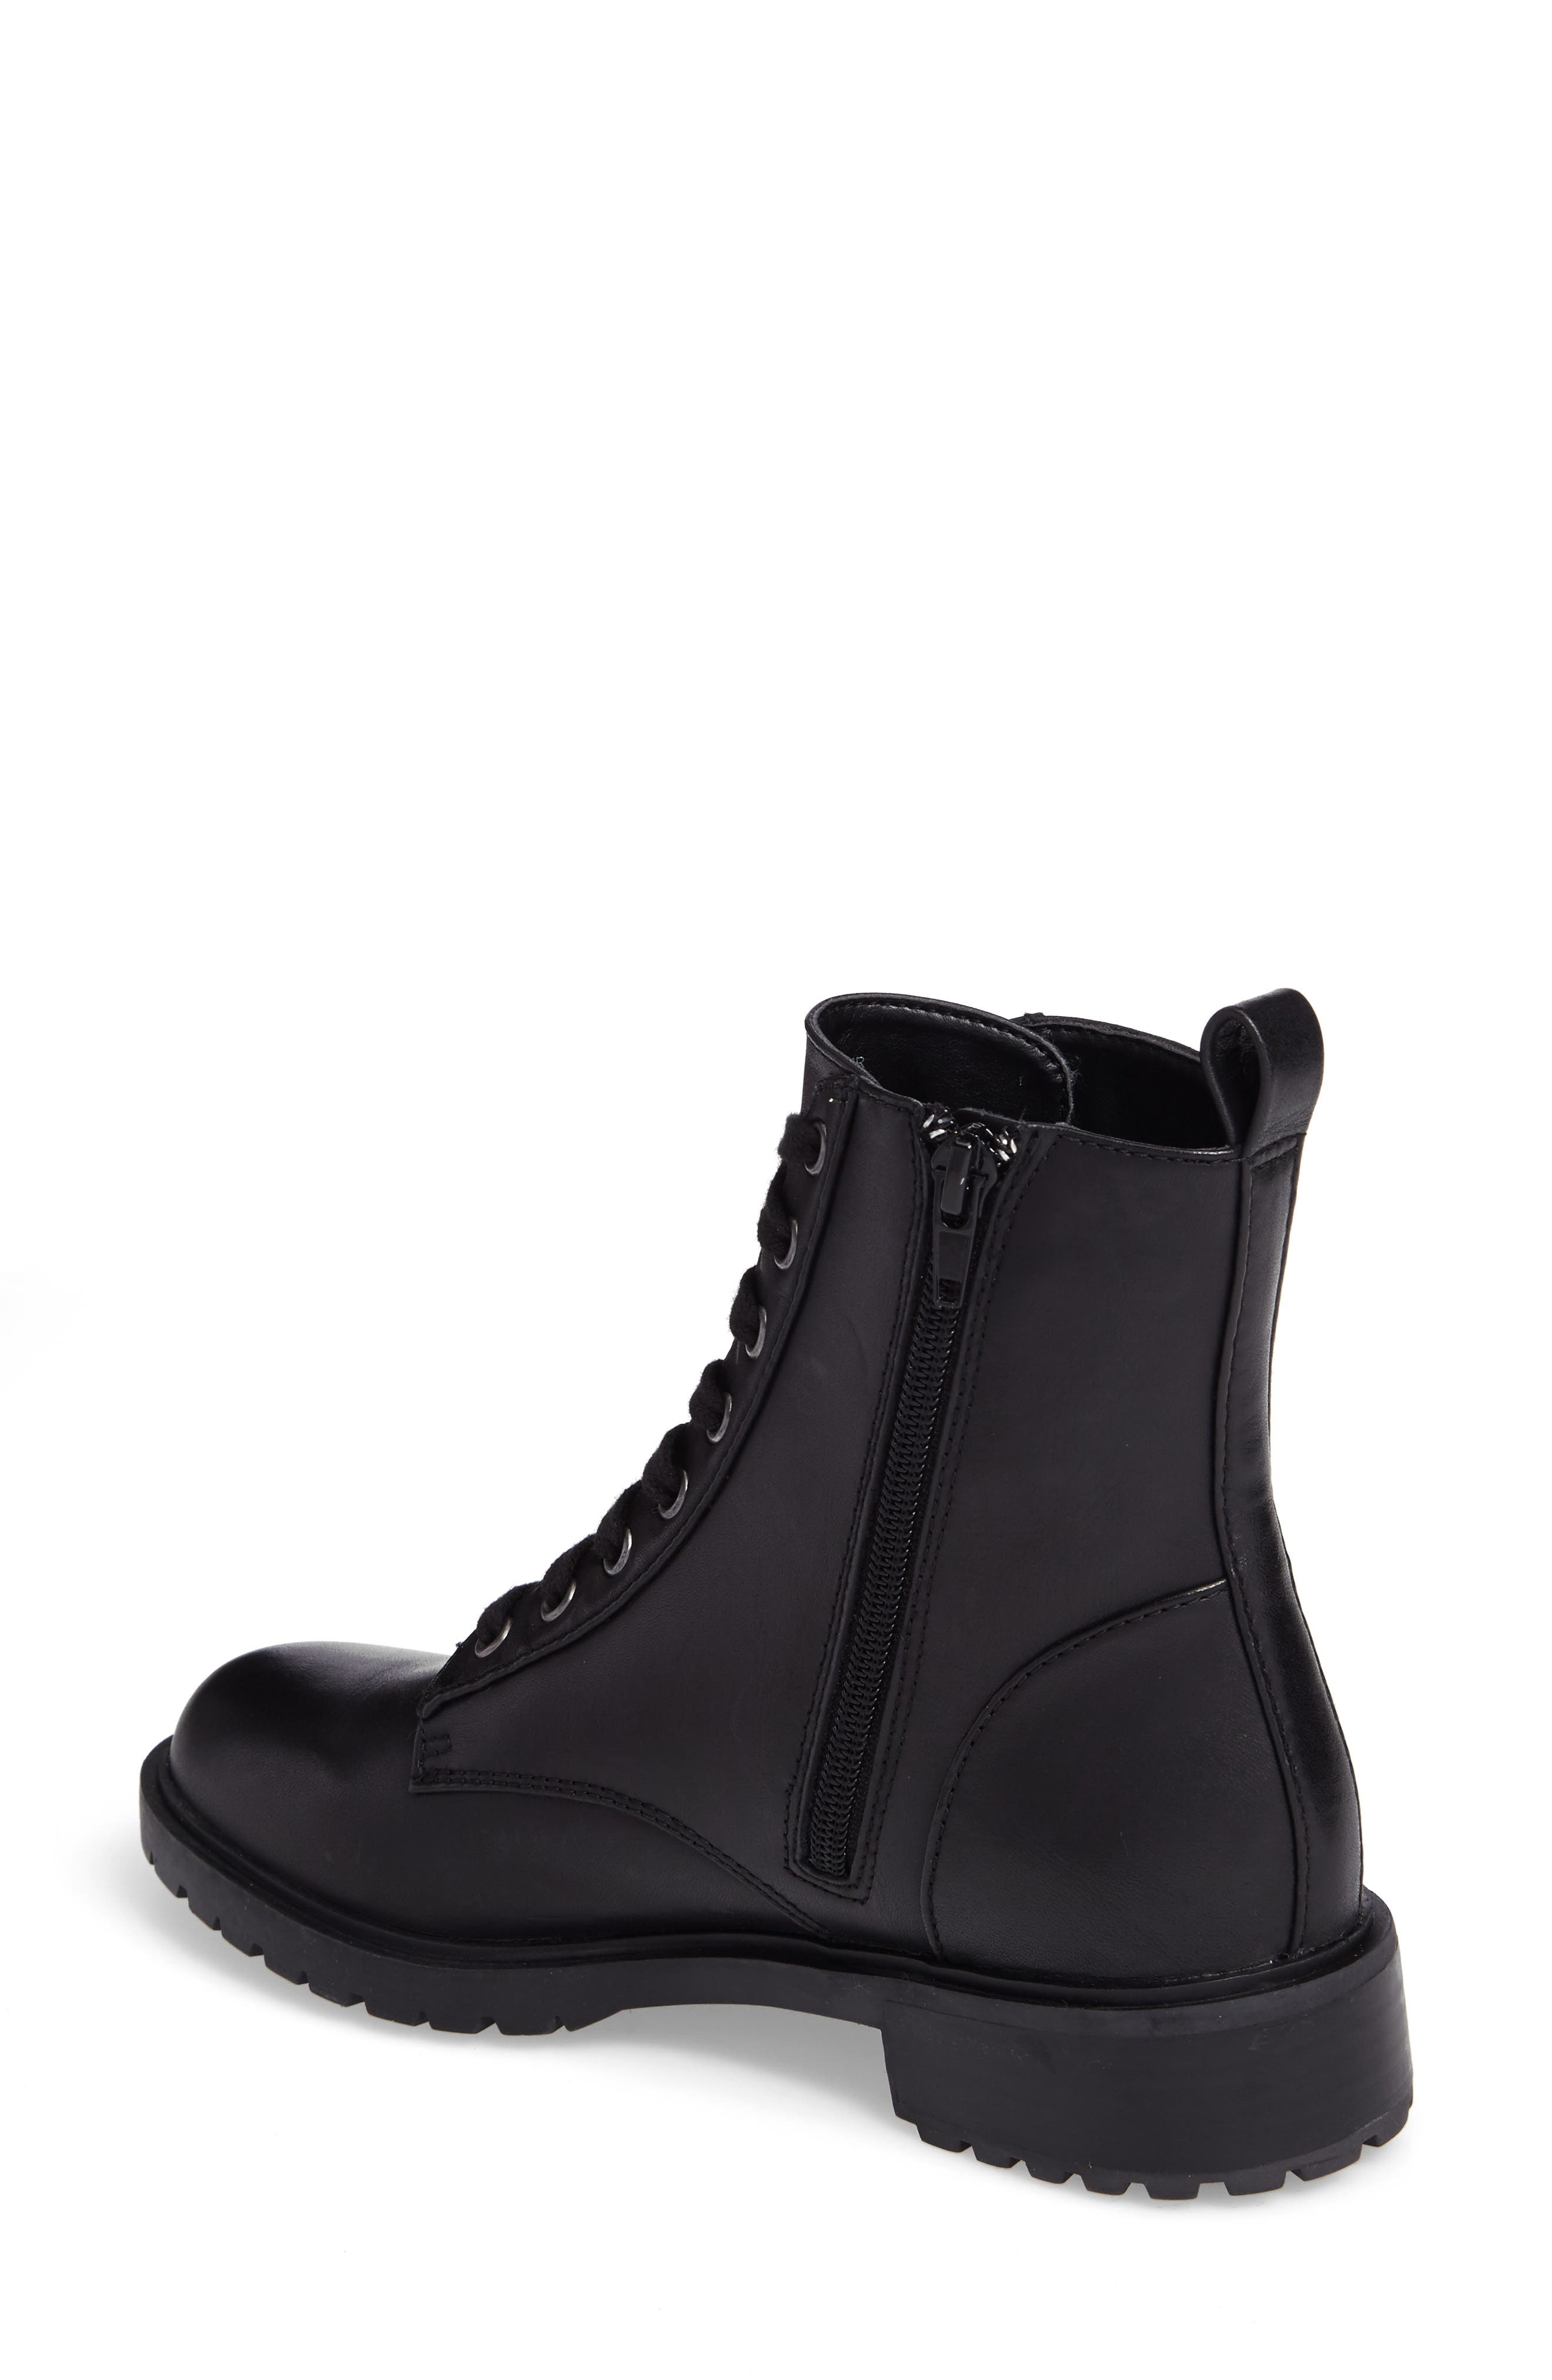 Officer Combat Boot,                             Alternate thumbnail 2, color,                             Black Leather